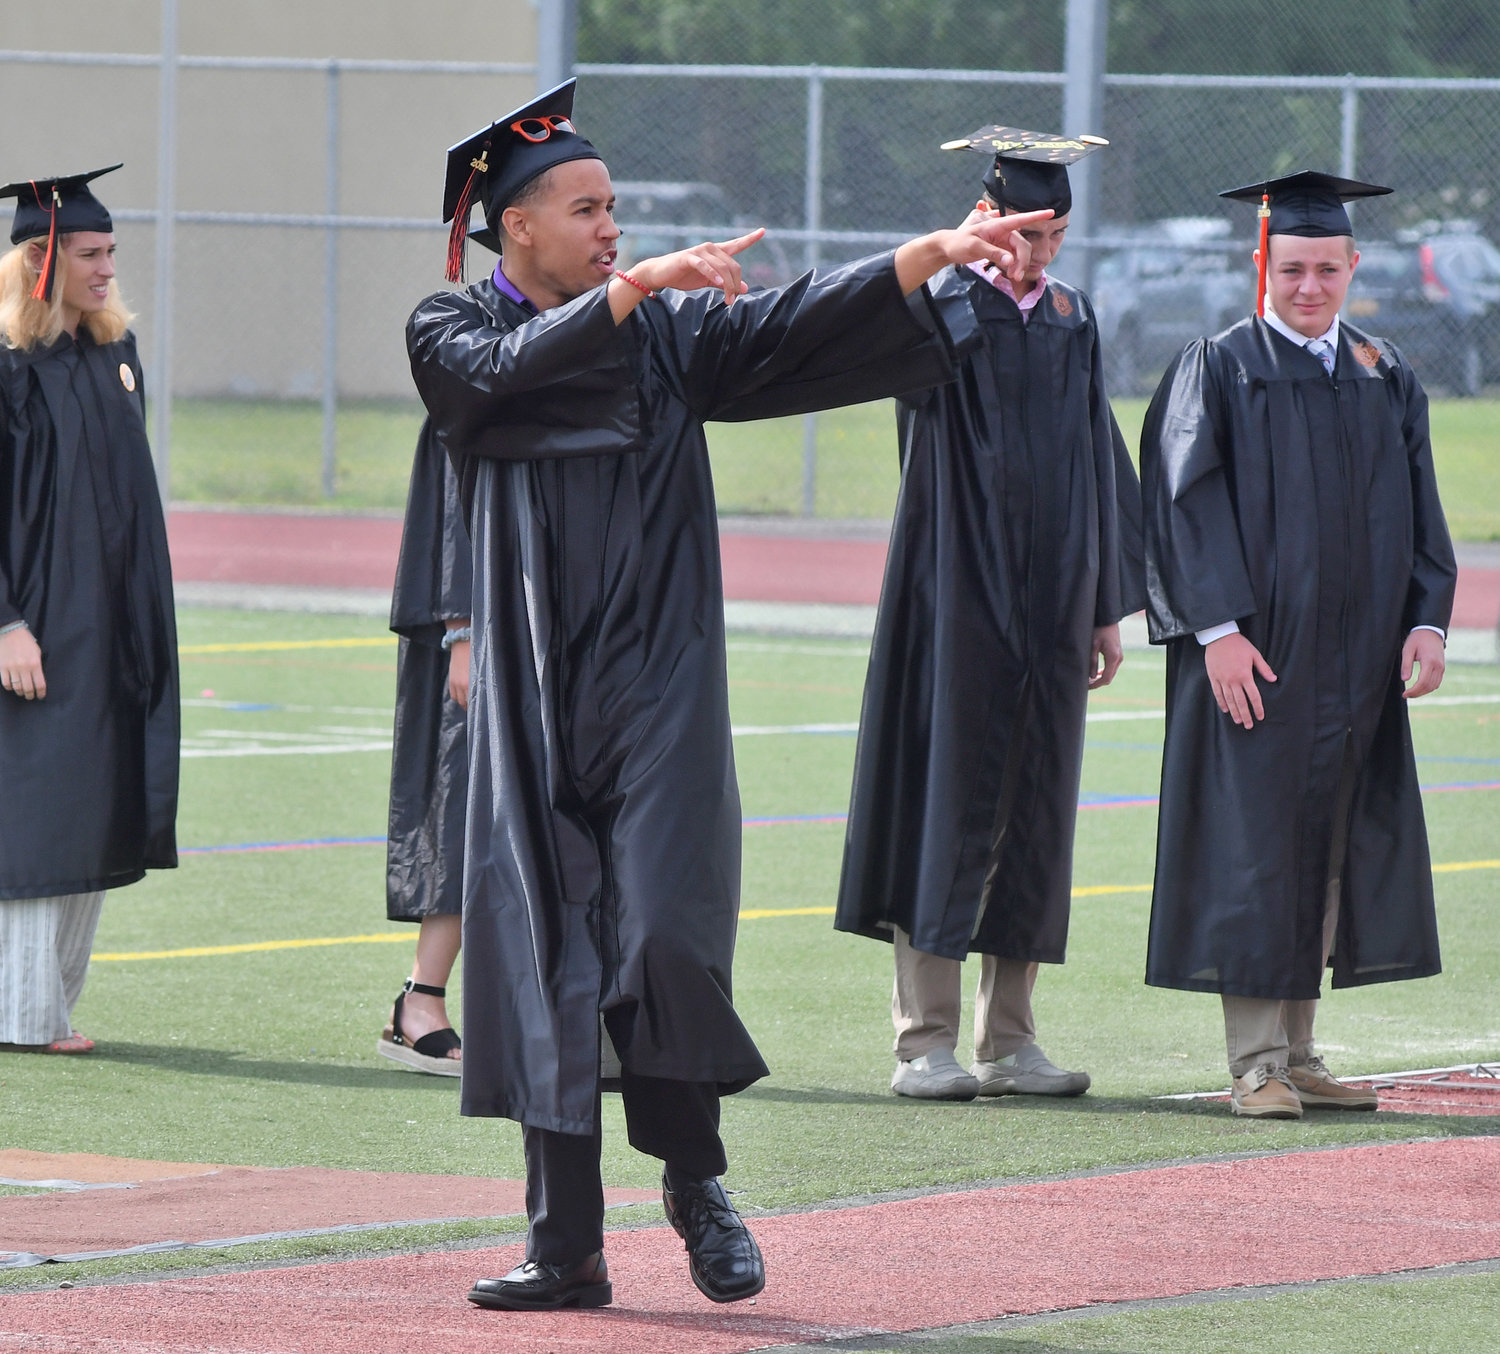 HERE'S TO YOU — Jerome B. Gordon points to the crowd as he walks to receive his diploma during the Rome Free Academy commencement Saturday.